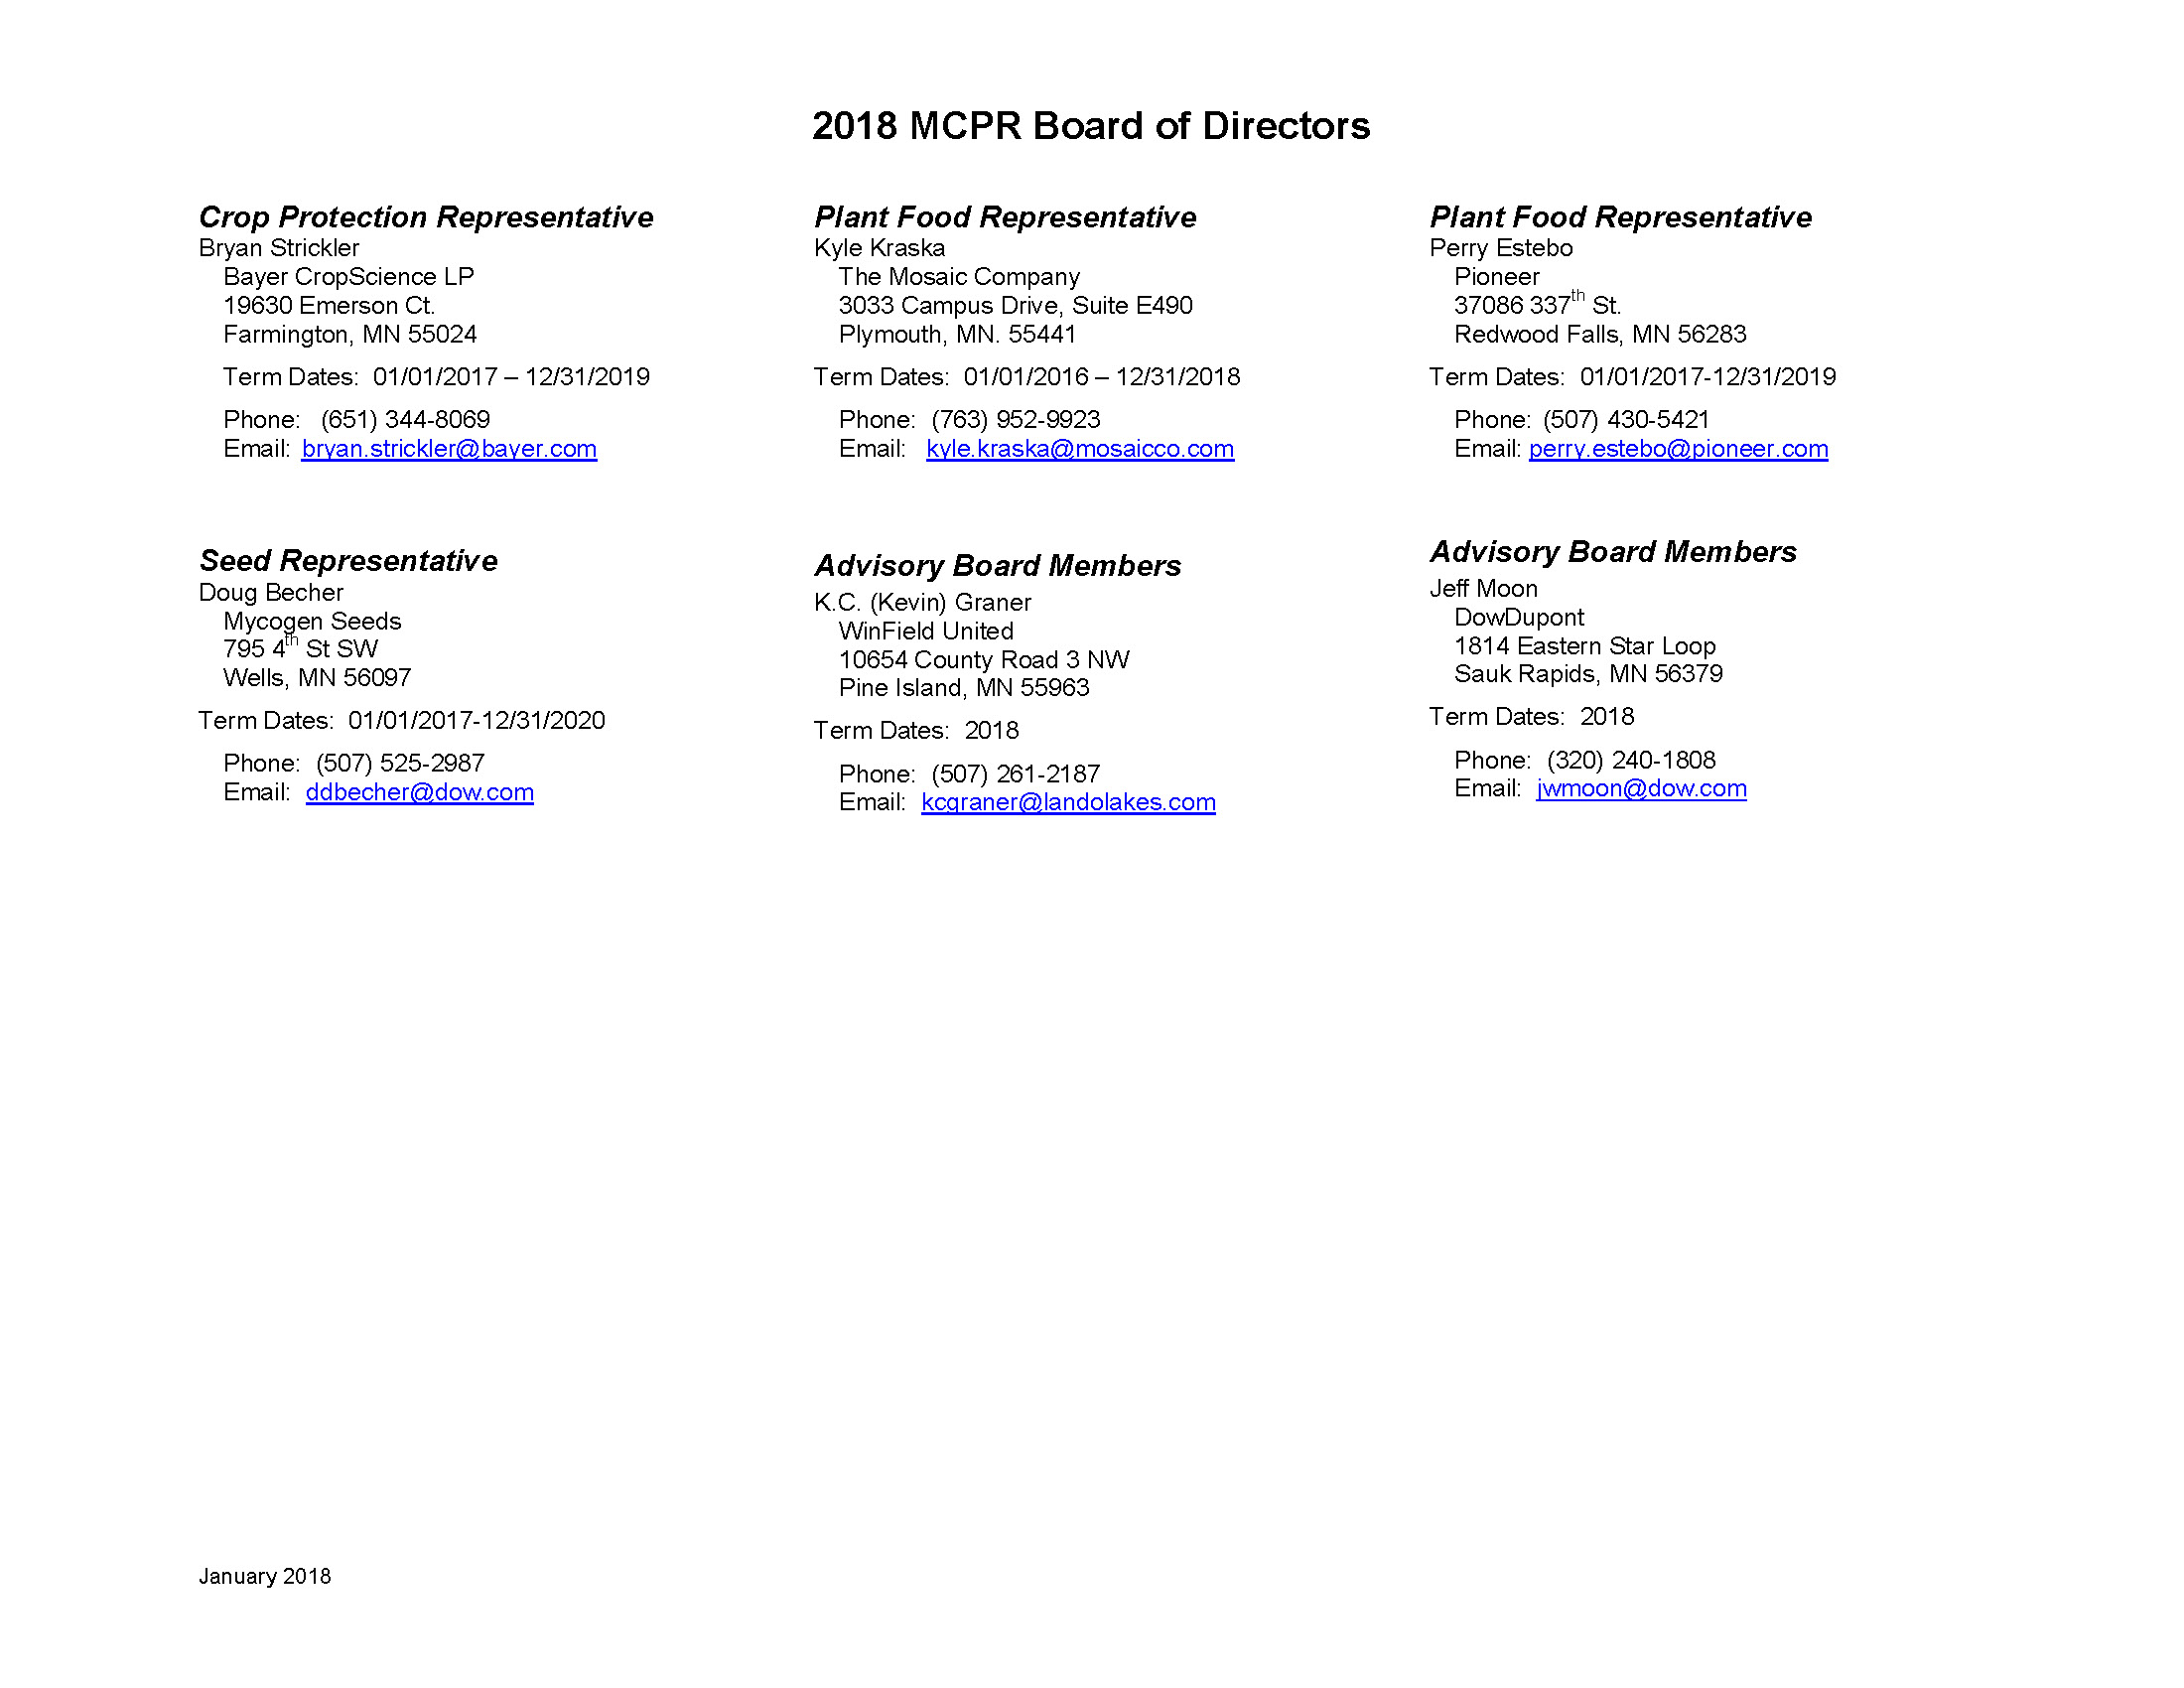 2018 MCPR Board of Directors_April2018_Page_2